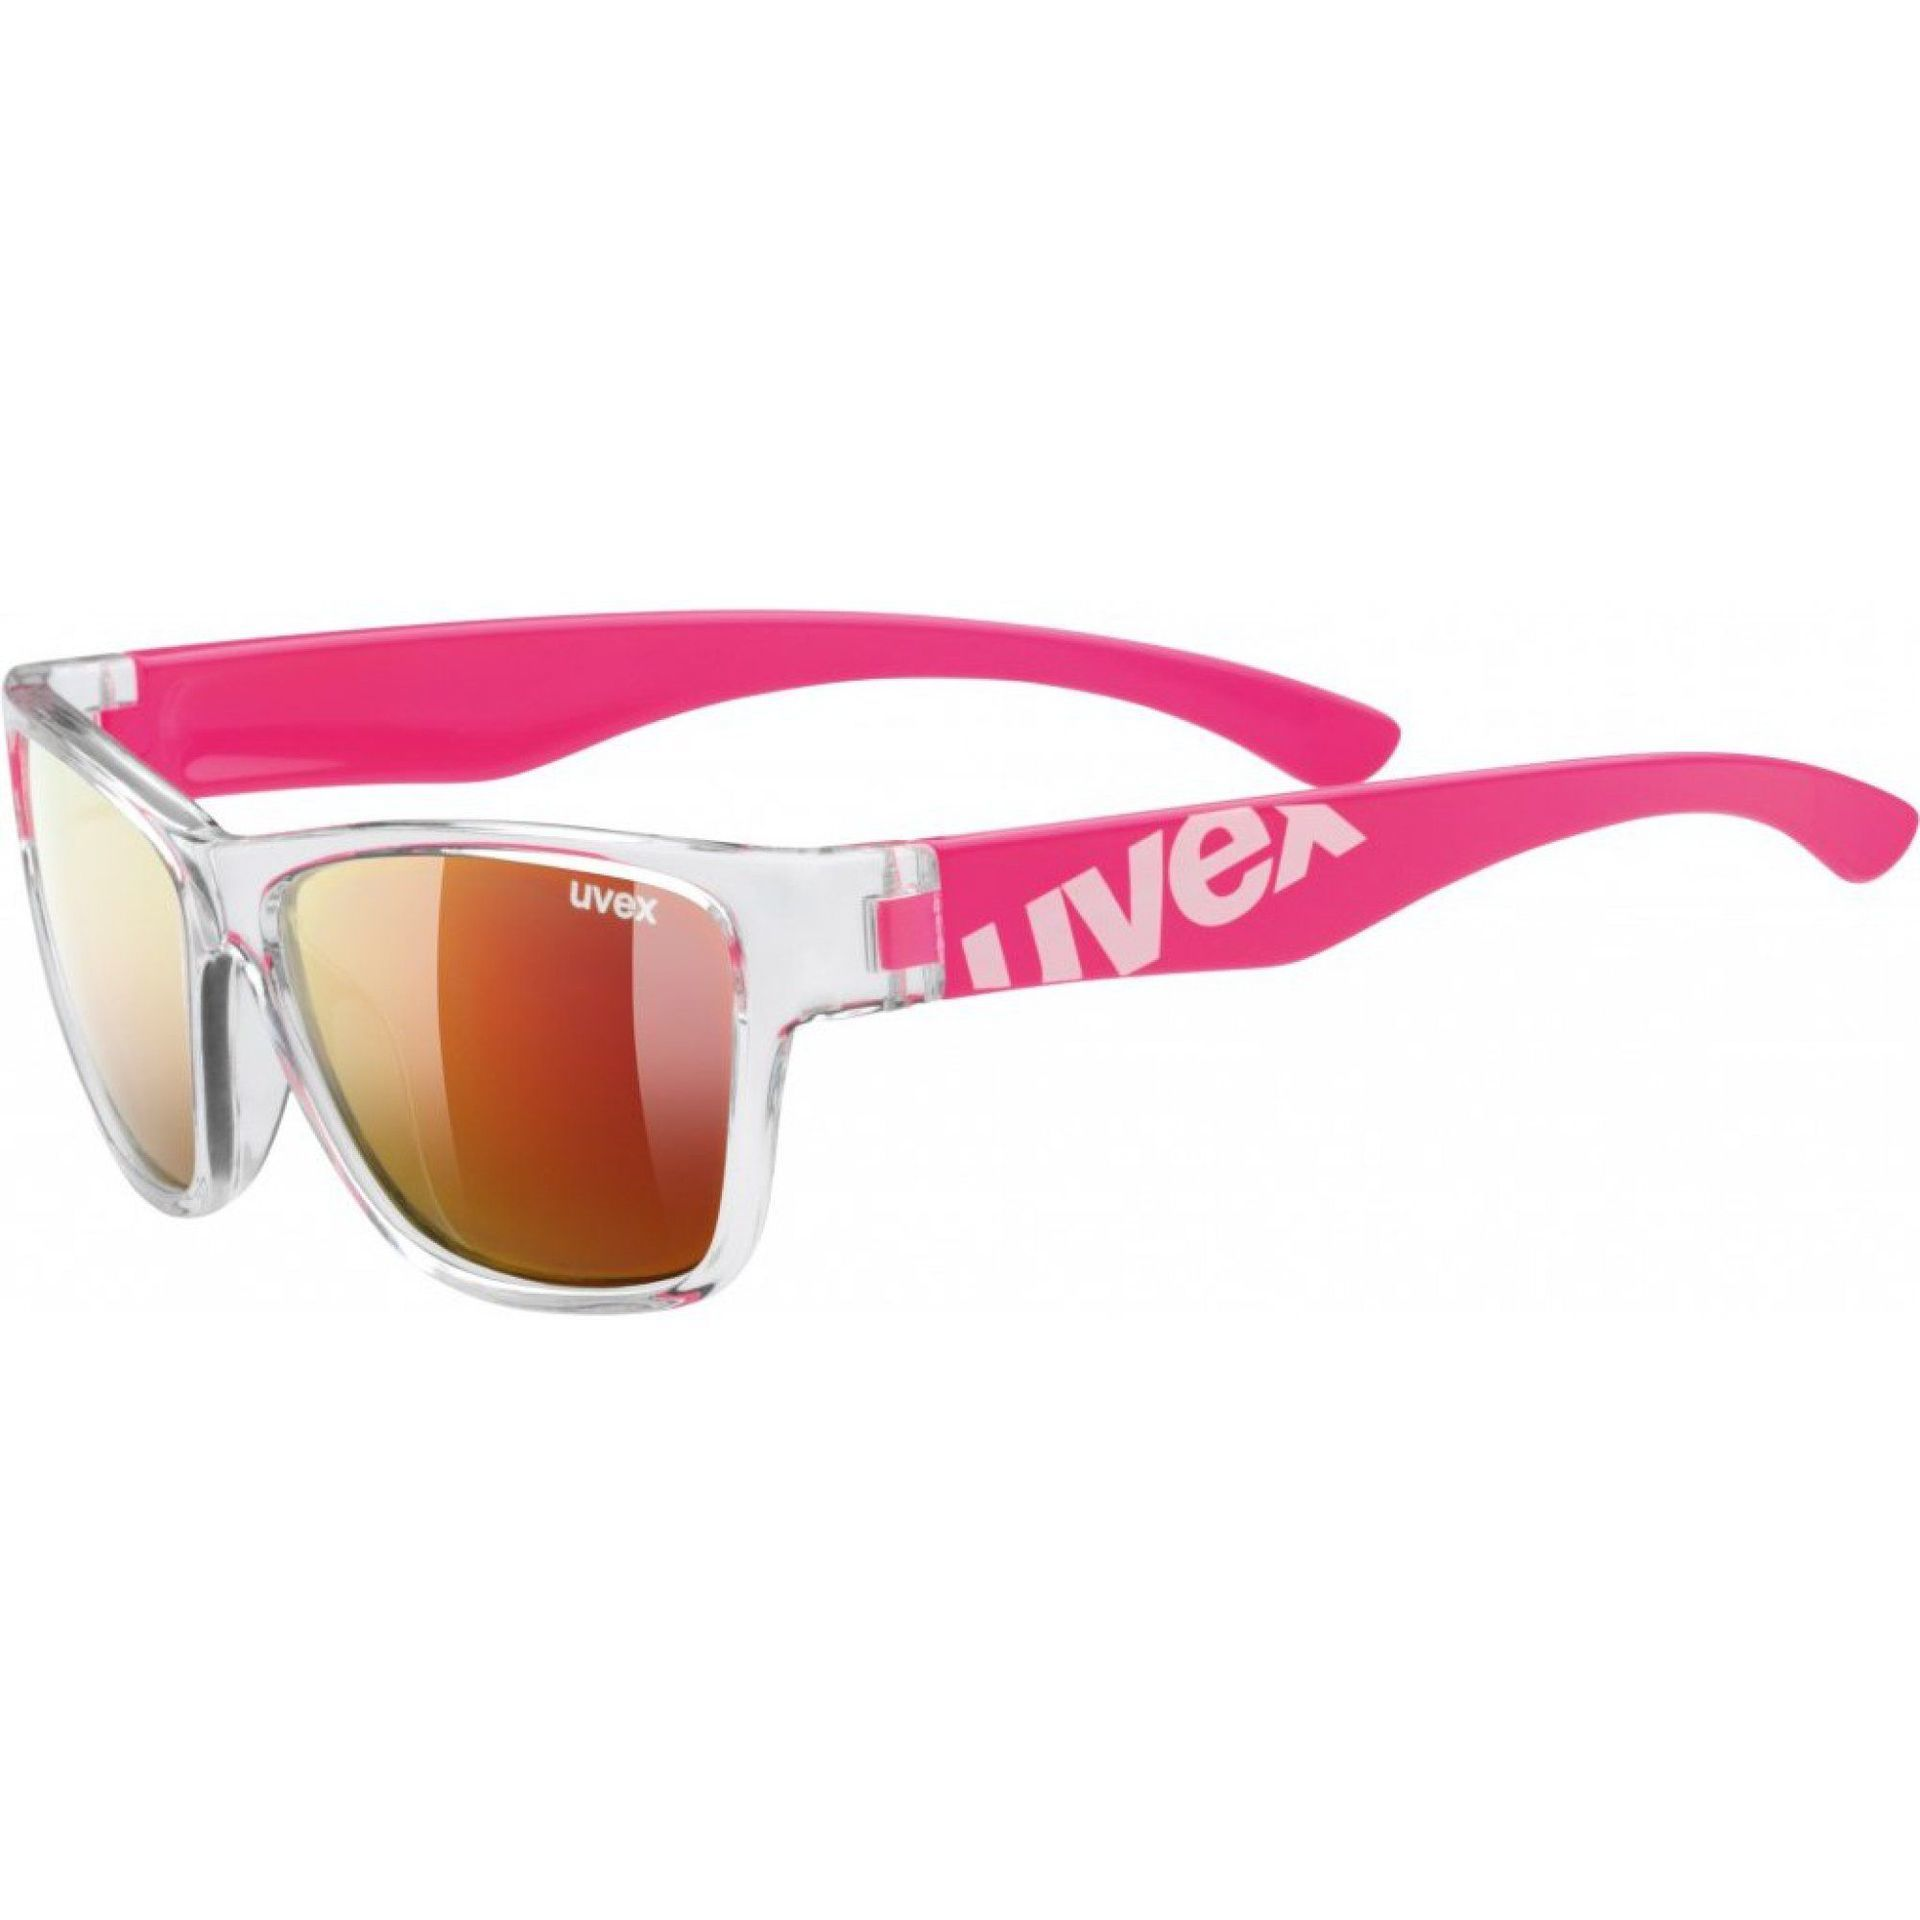 OKULARY UVEX SPORTSTYLE 508 CLEAR PINK|MIRROR RED